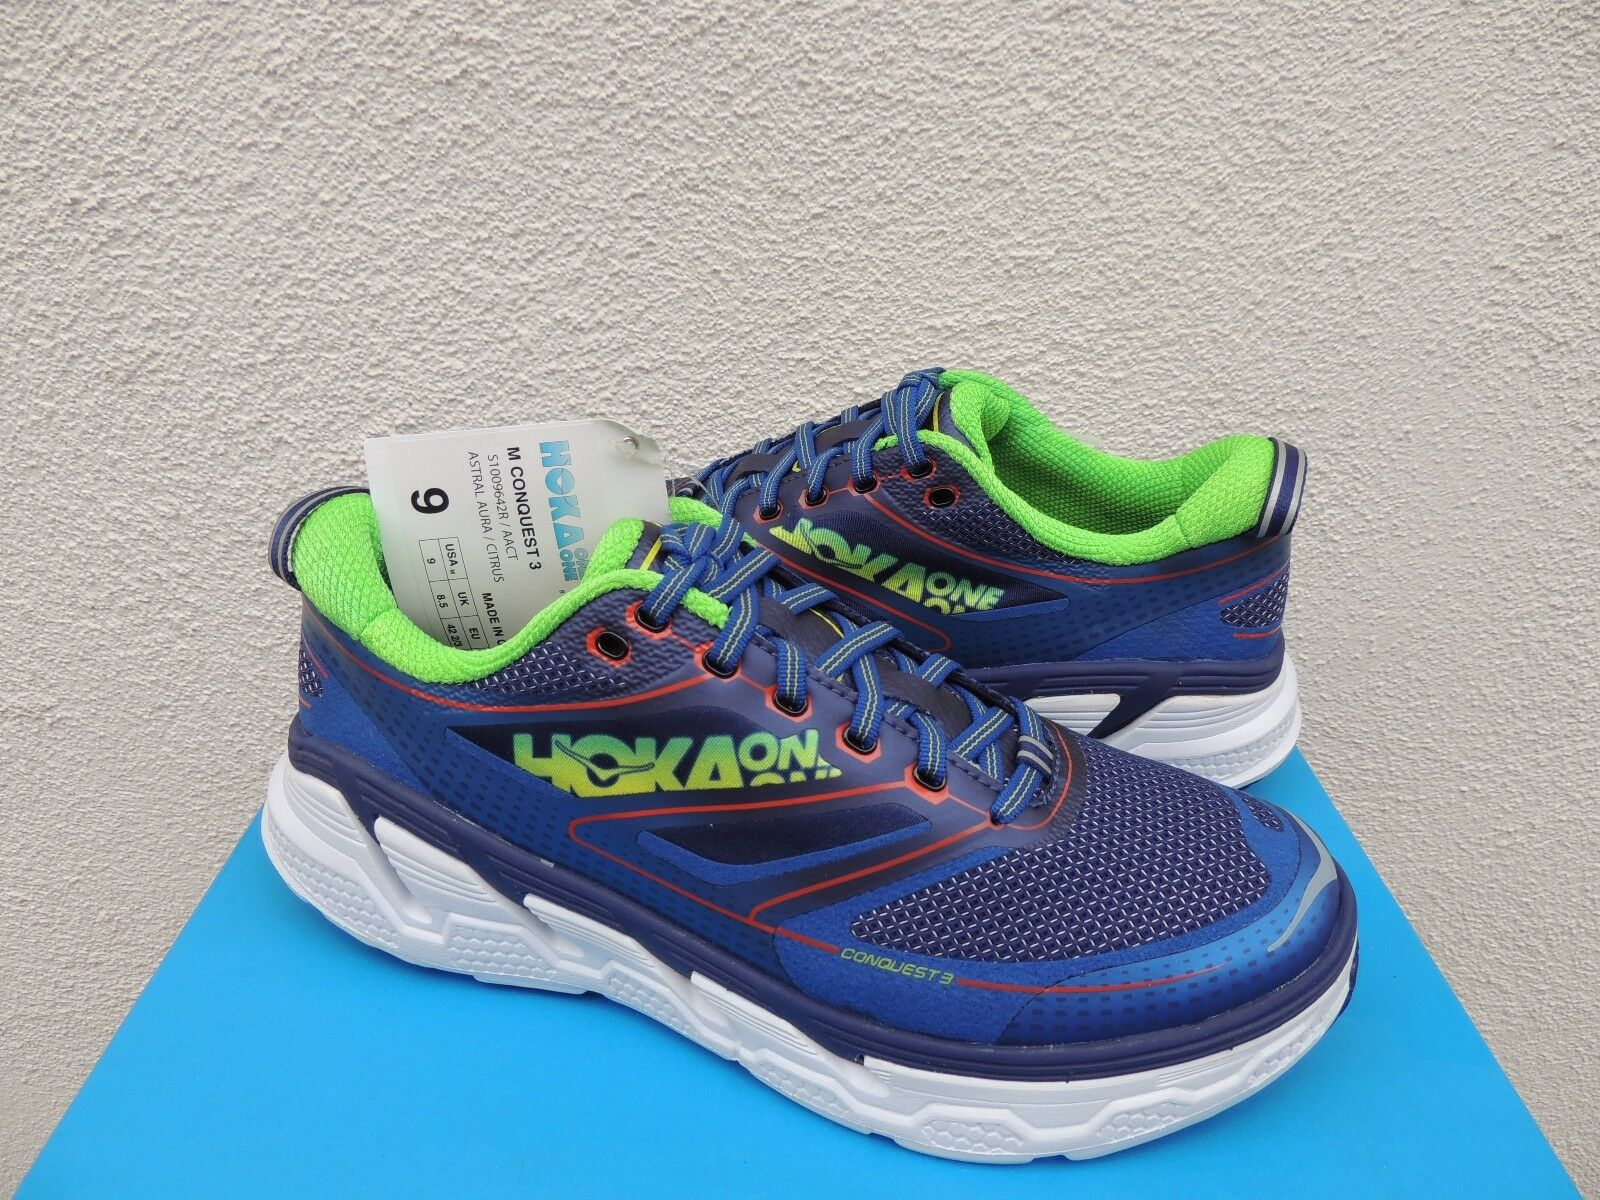 HOKA ONE ONE CONQUEST 3 ASTRAL AURA RUNNING schuhe, MEN US 9  EUR 42 2 3  NWT